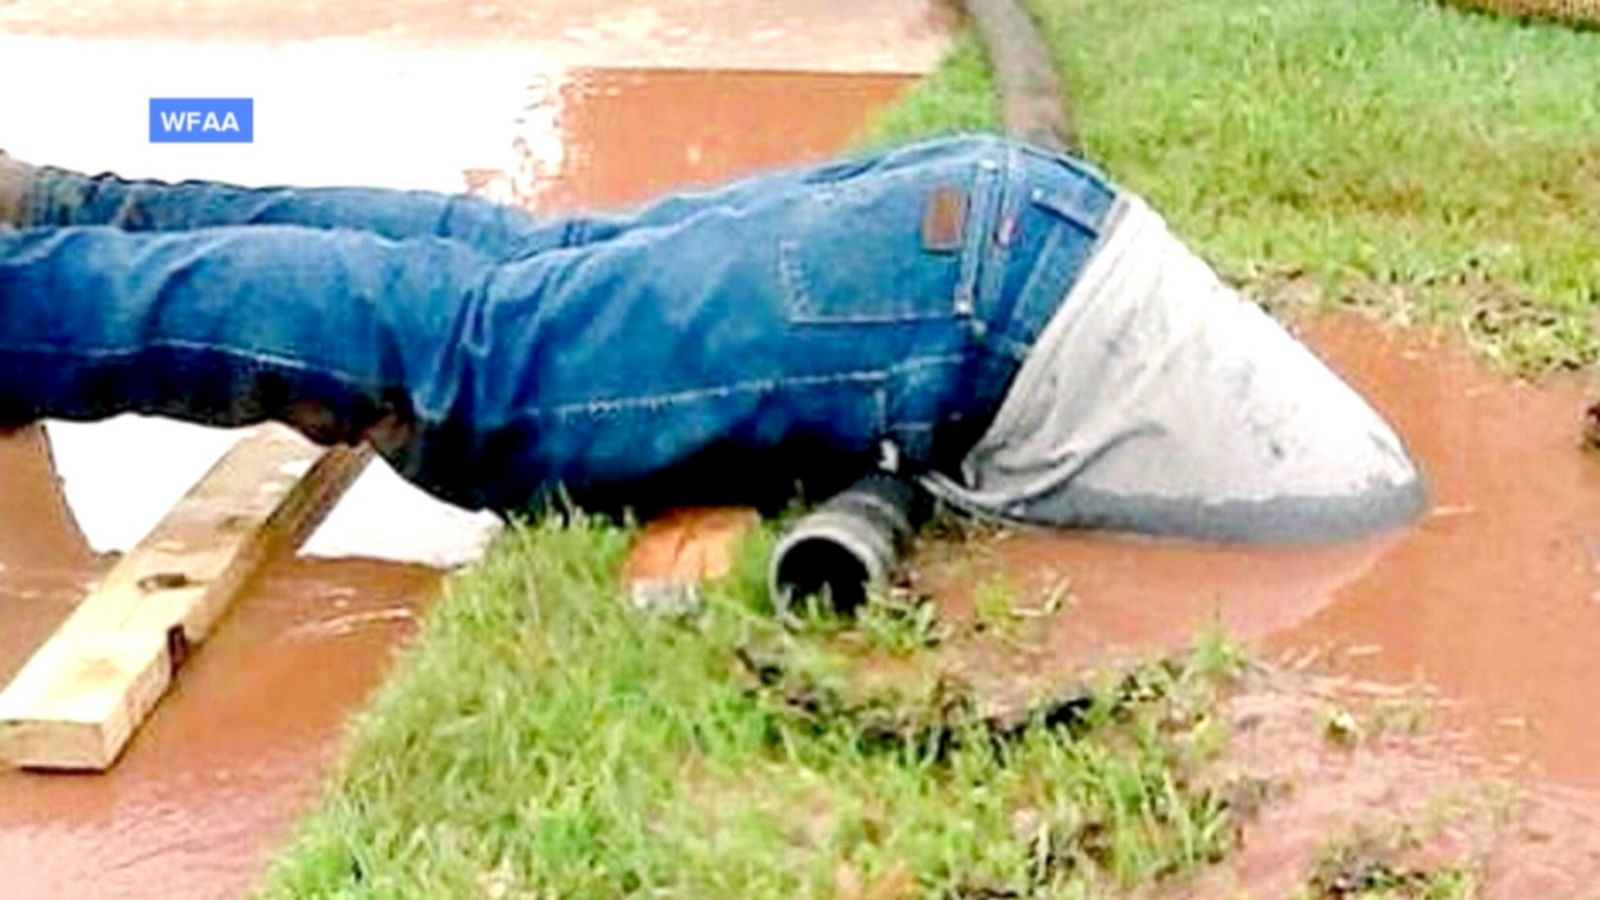 Photo of a utility worker submerged during a water-line repair takes the Internet by storm.